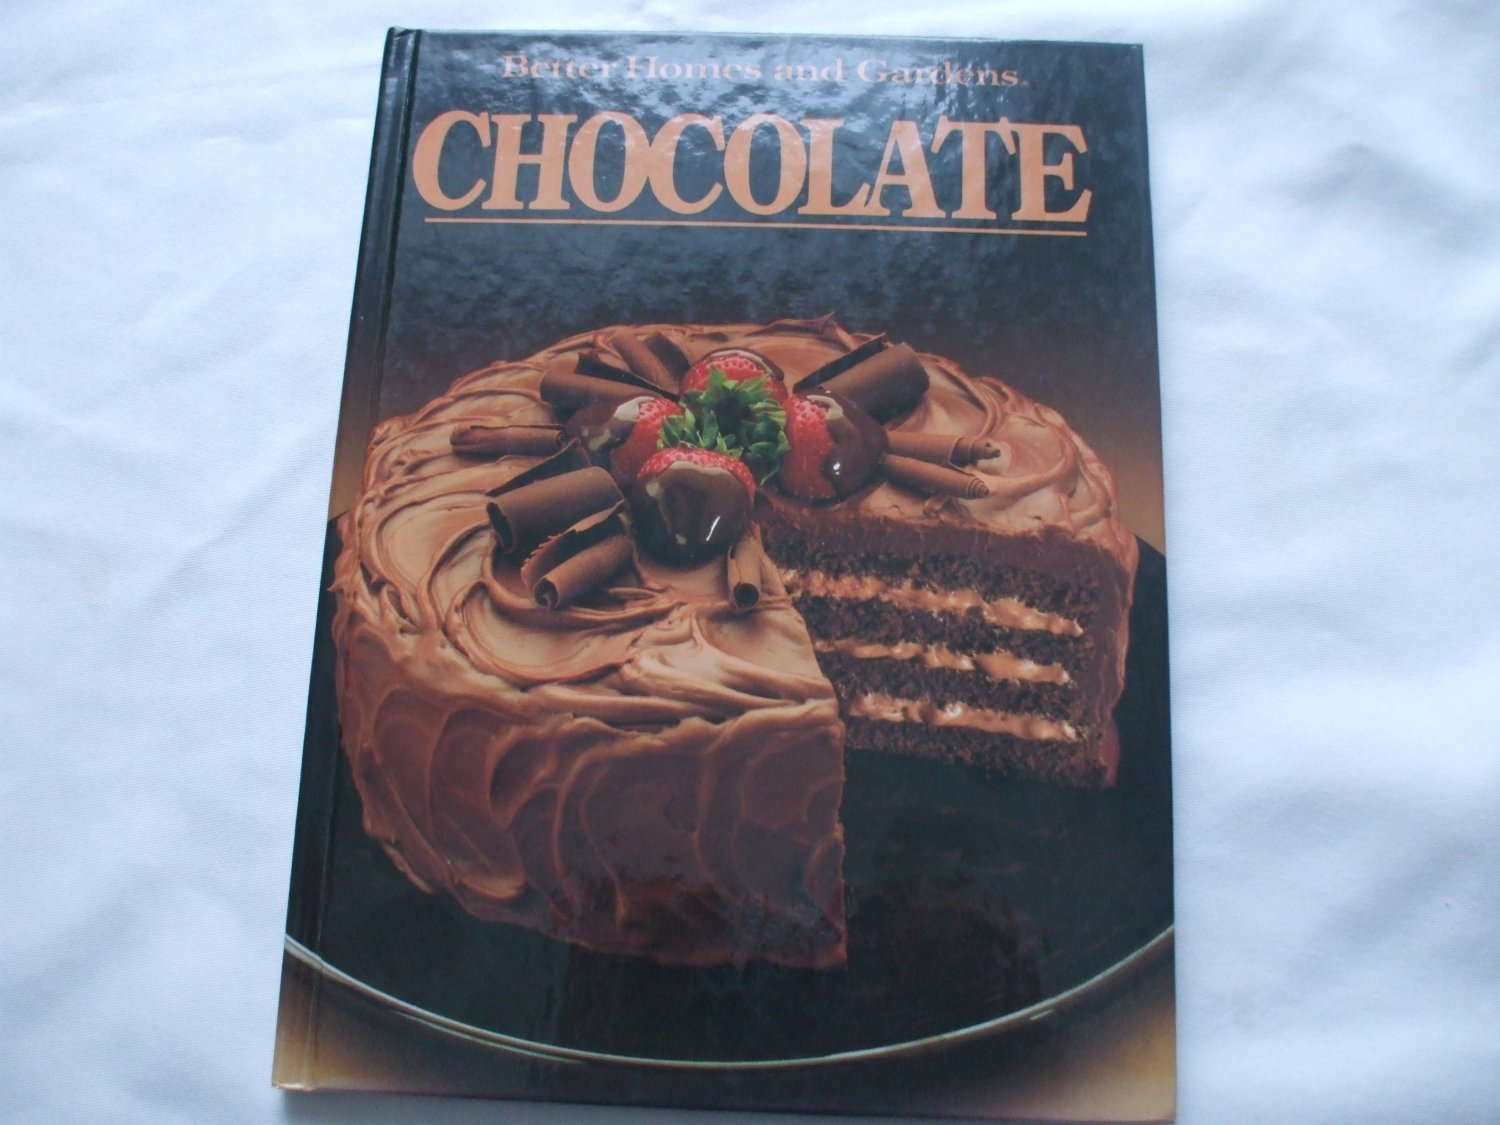 Chocolate Hardcover Book By Better Homes and Gardens